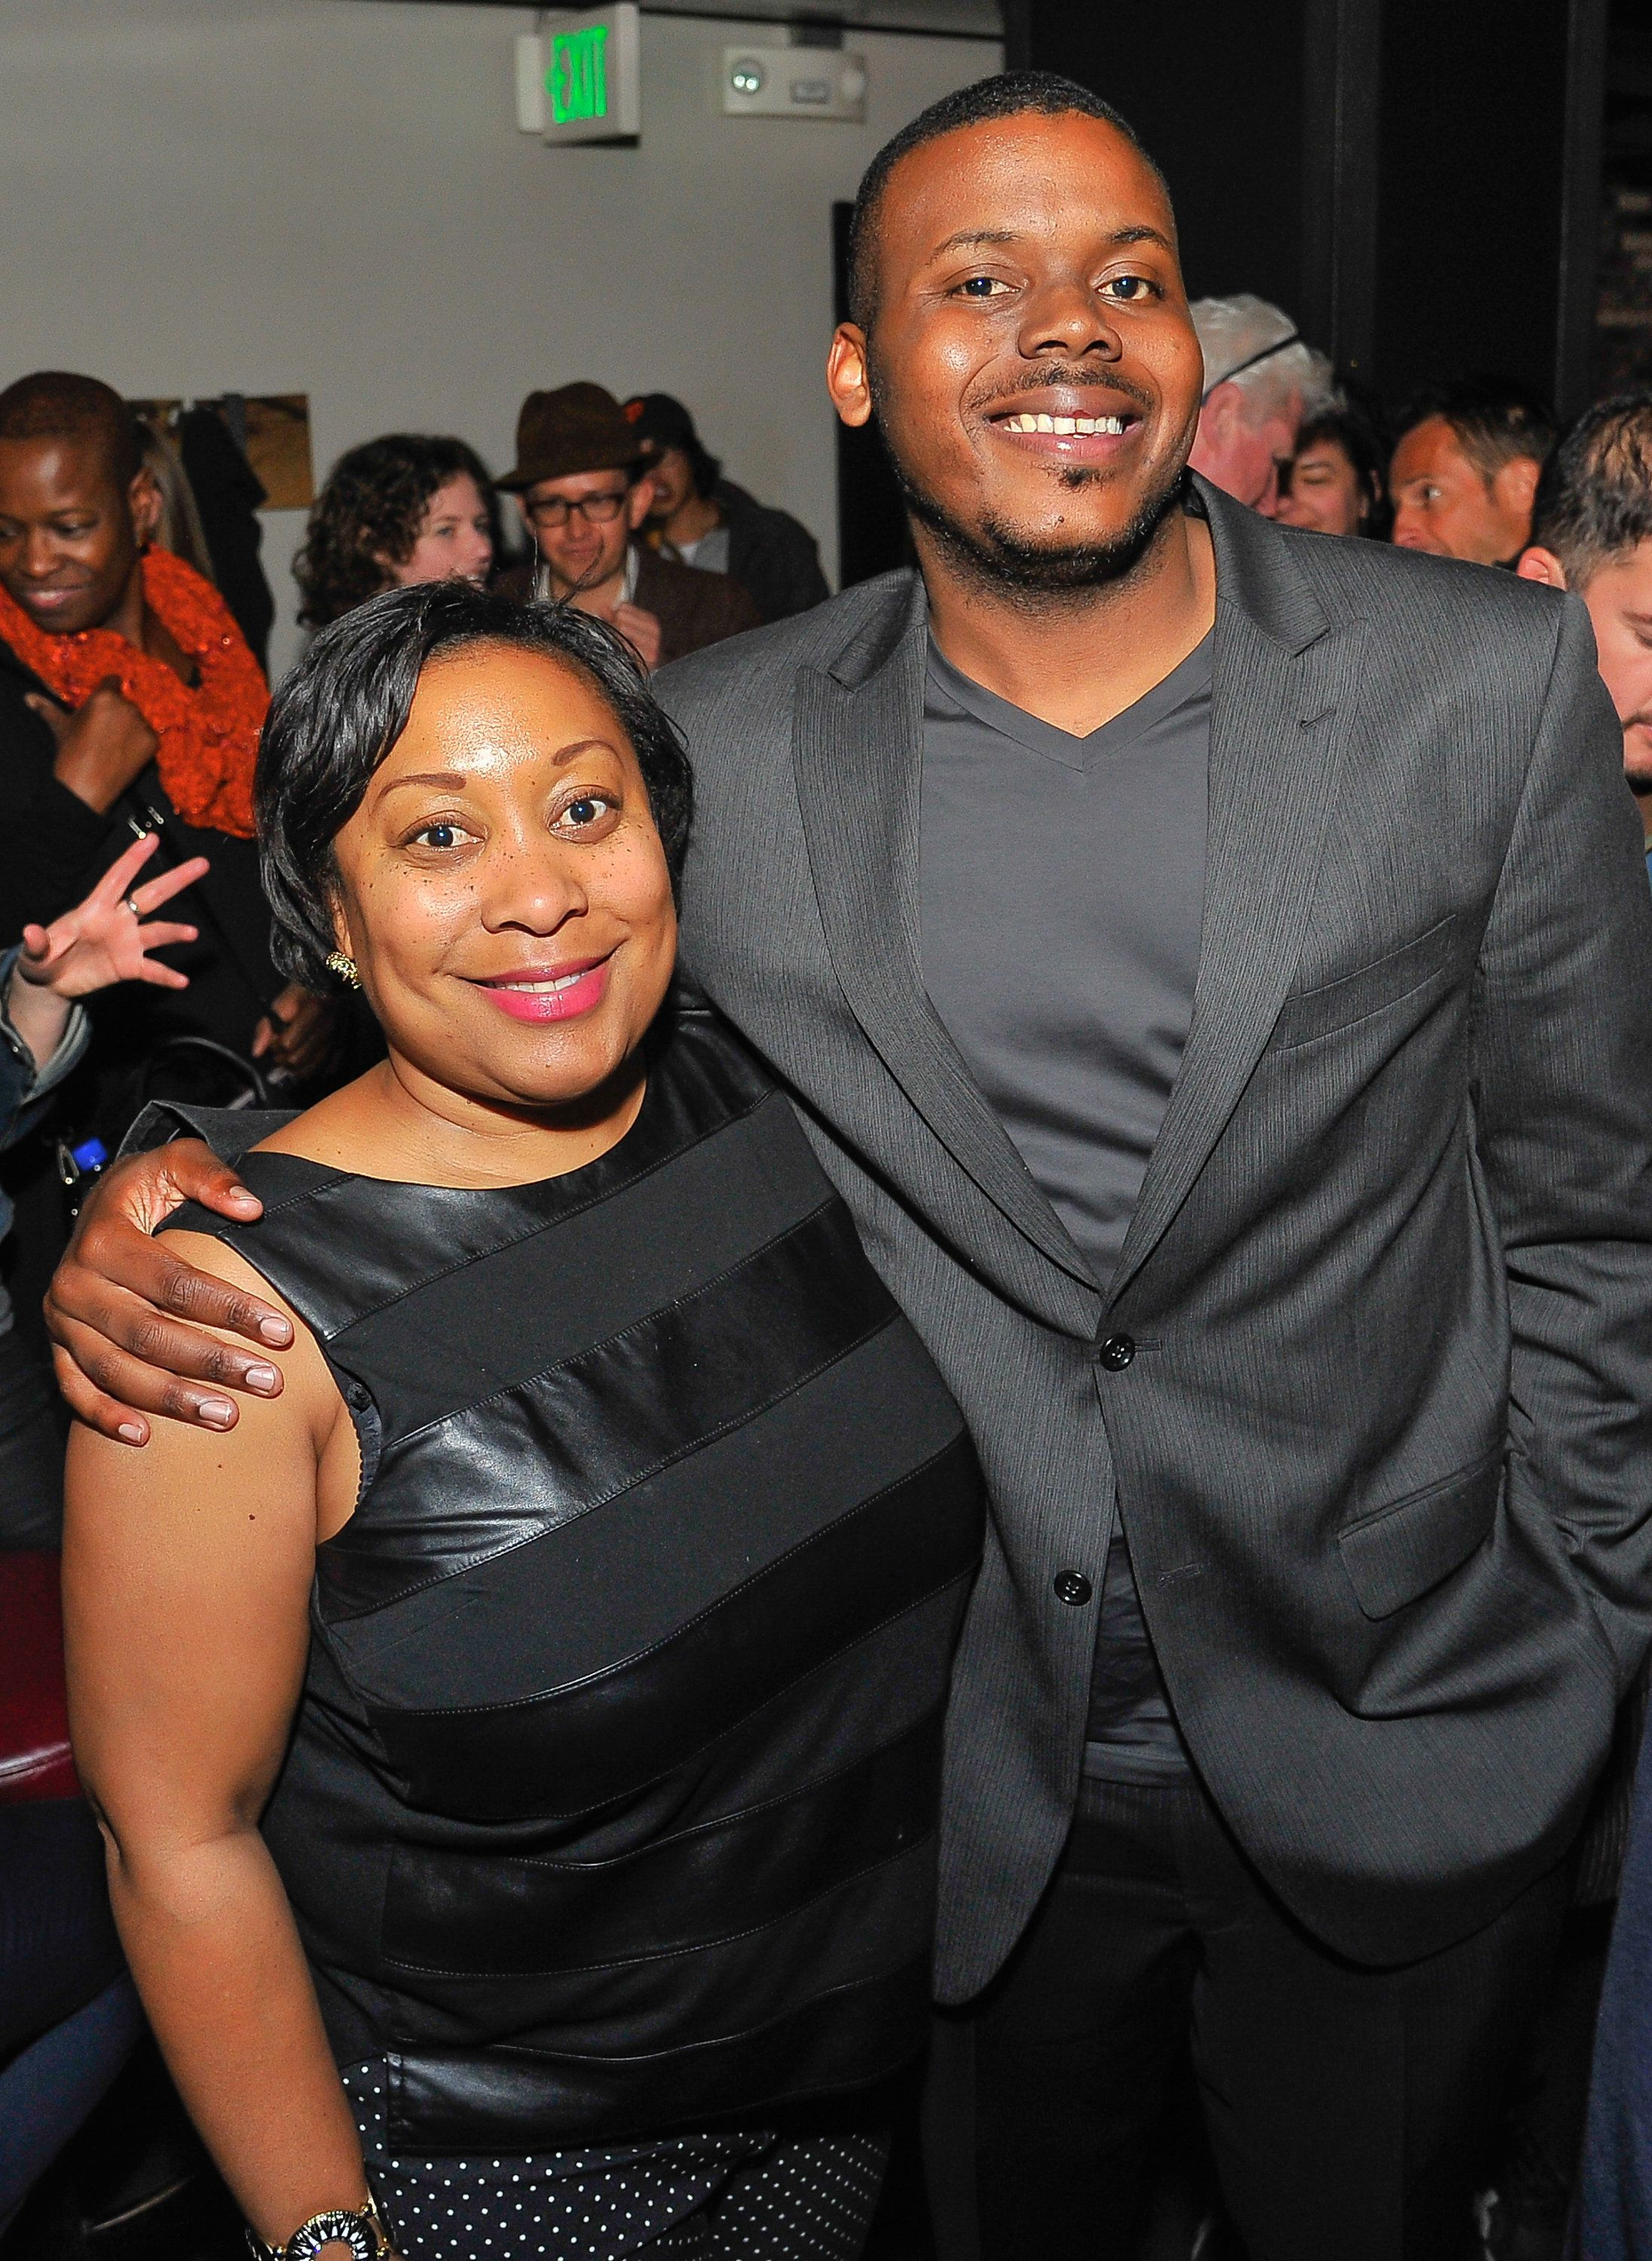 SAN FRANCISCO, CA - APRIL 27: (L-R) Gwyneth Borden, MTA Commission San Francisco and Michael Tubbs, Stockton, CA Council member attend the SFFS screening 'Under The Gun' with Stephanie Soechtig afterparty at Victoria Theatre on April 27, 2016 in San Francisco, California.  (Photo by Steve Jennings/Getty Images for EPIX)